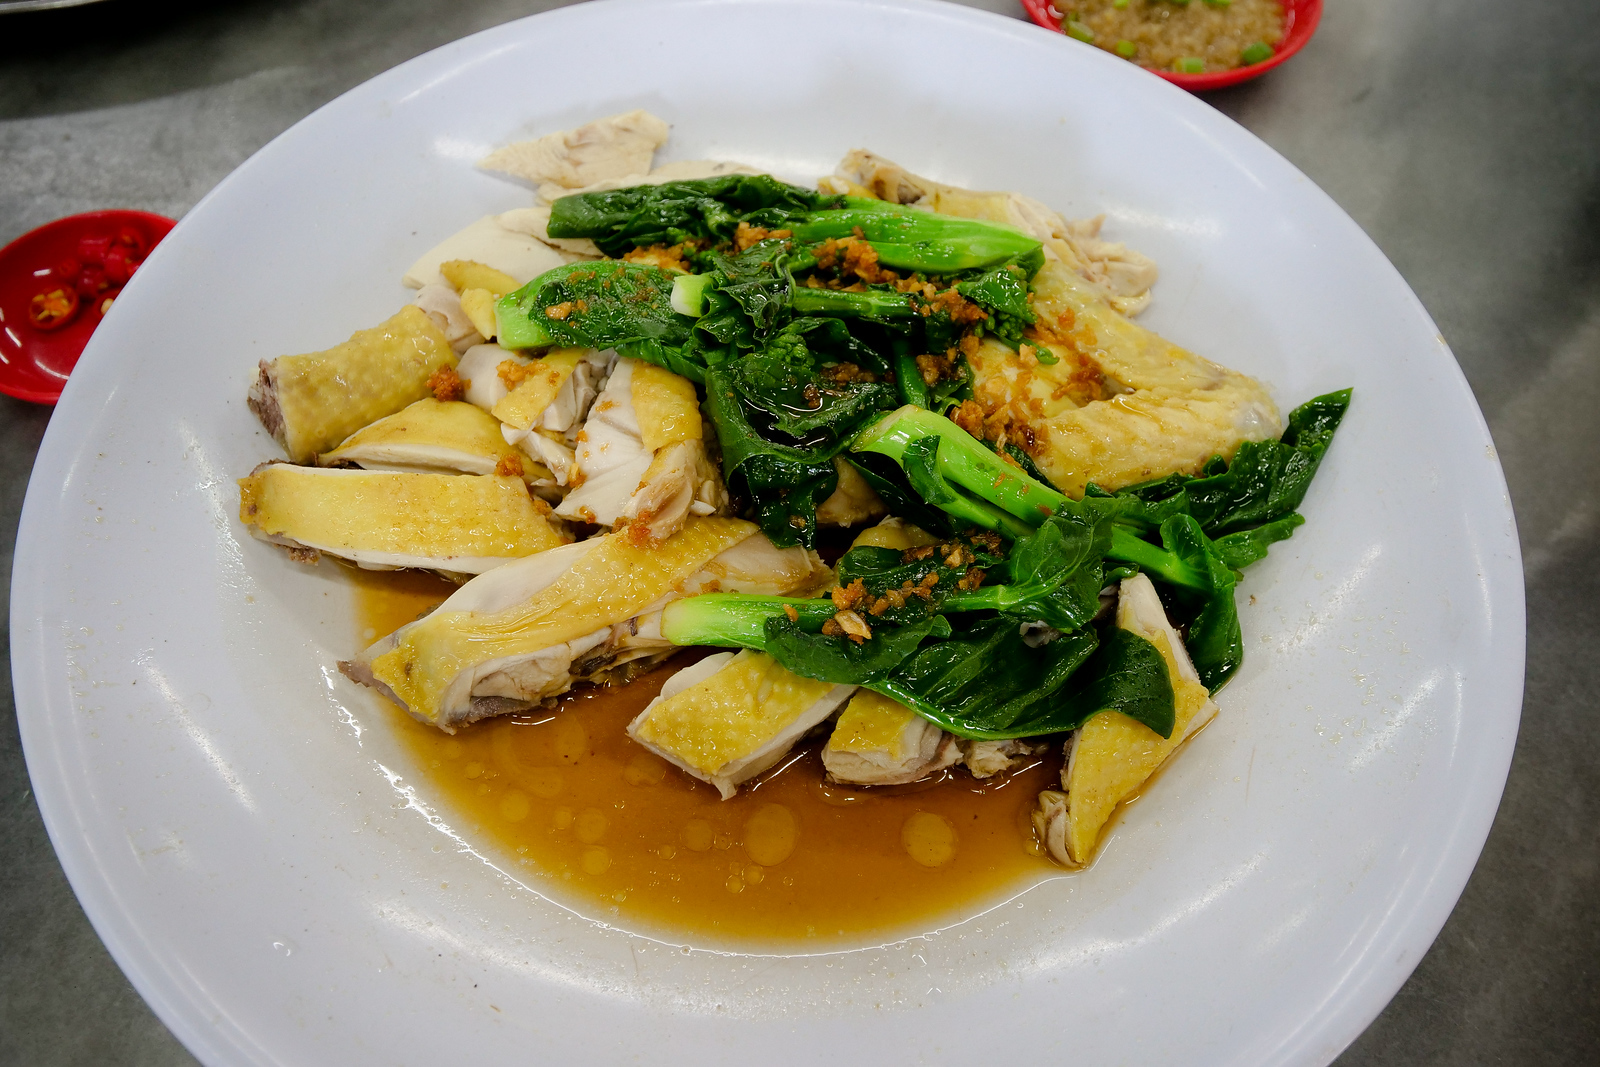 Serving the yellow skin chicken with chinese kale and fried garlic, this dish makes an excellent food to pair with your steam fish head